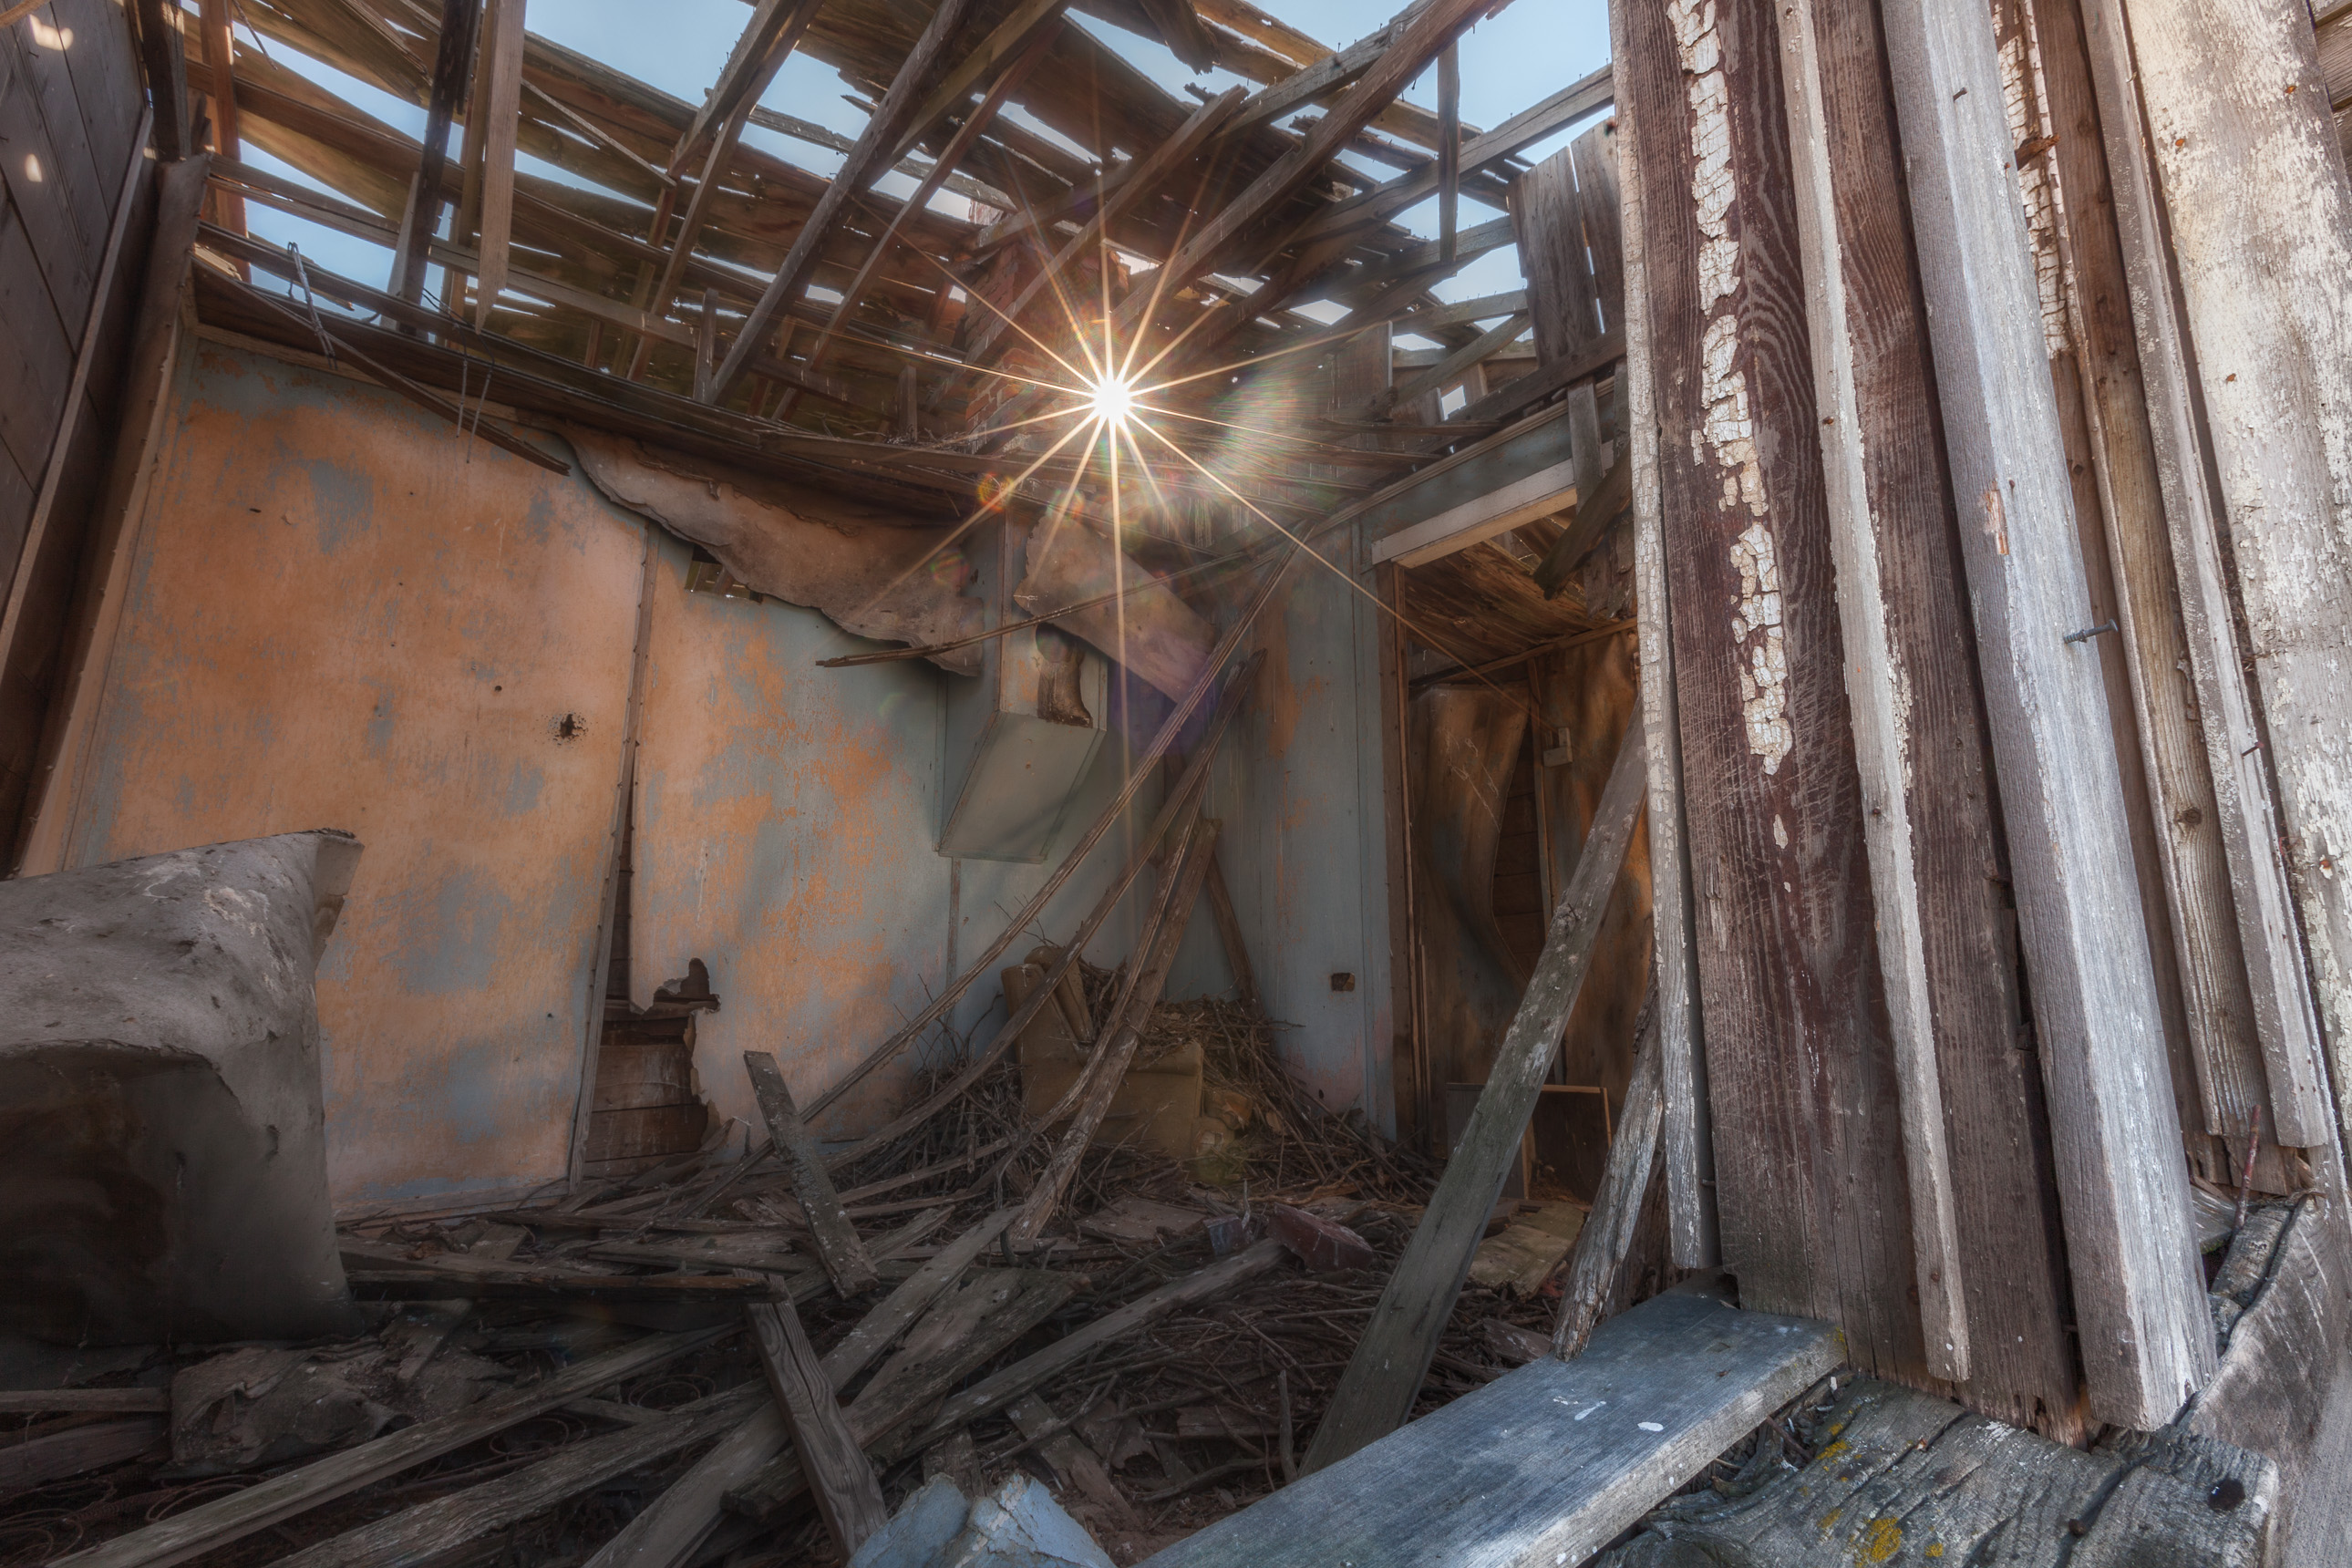 Sunburst through the roof of an abandoned house